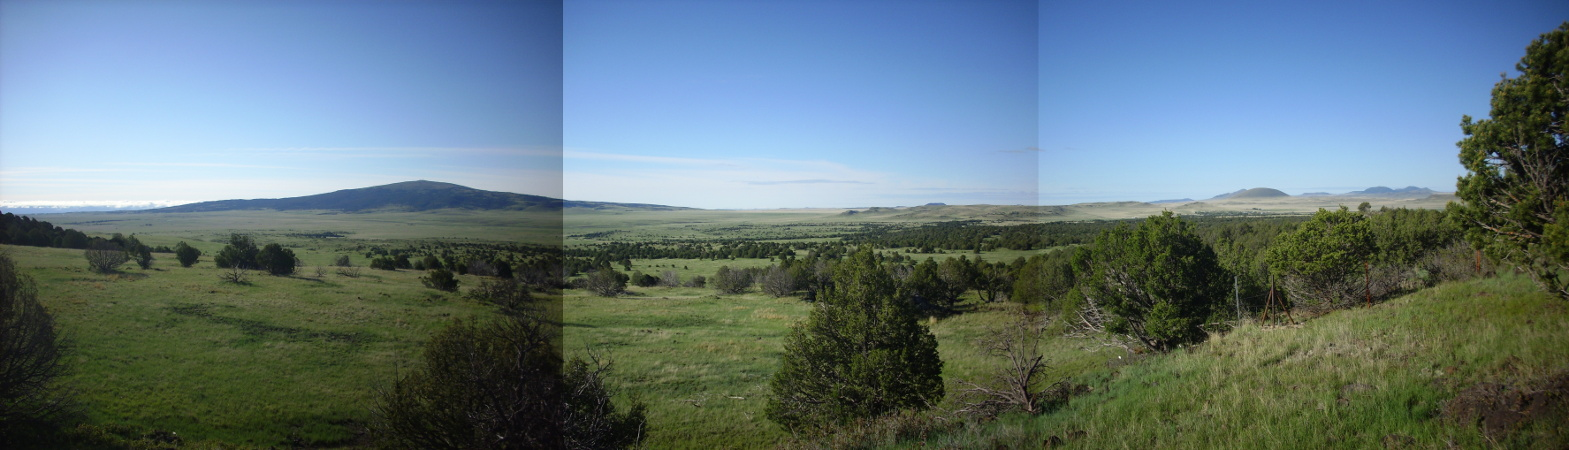 South of Mount Capulin